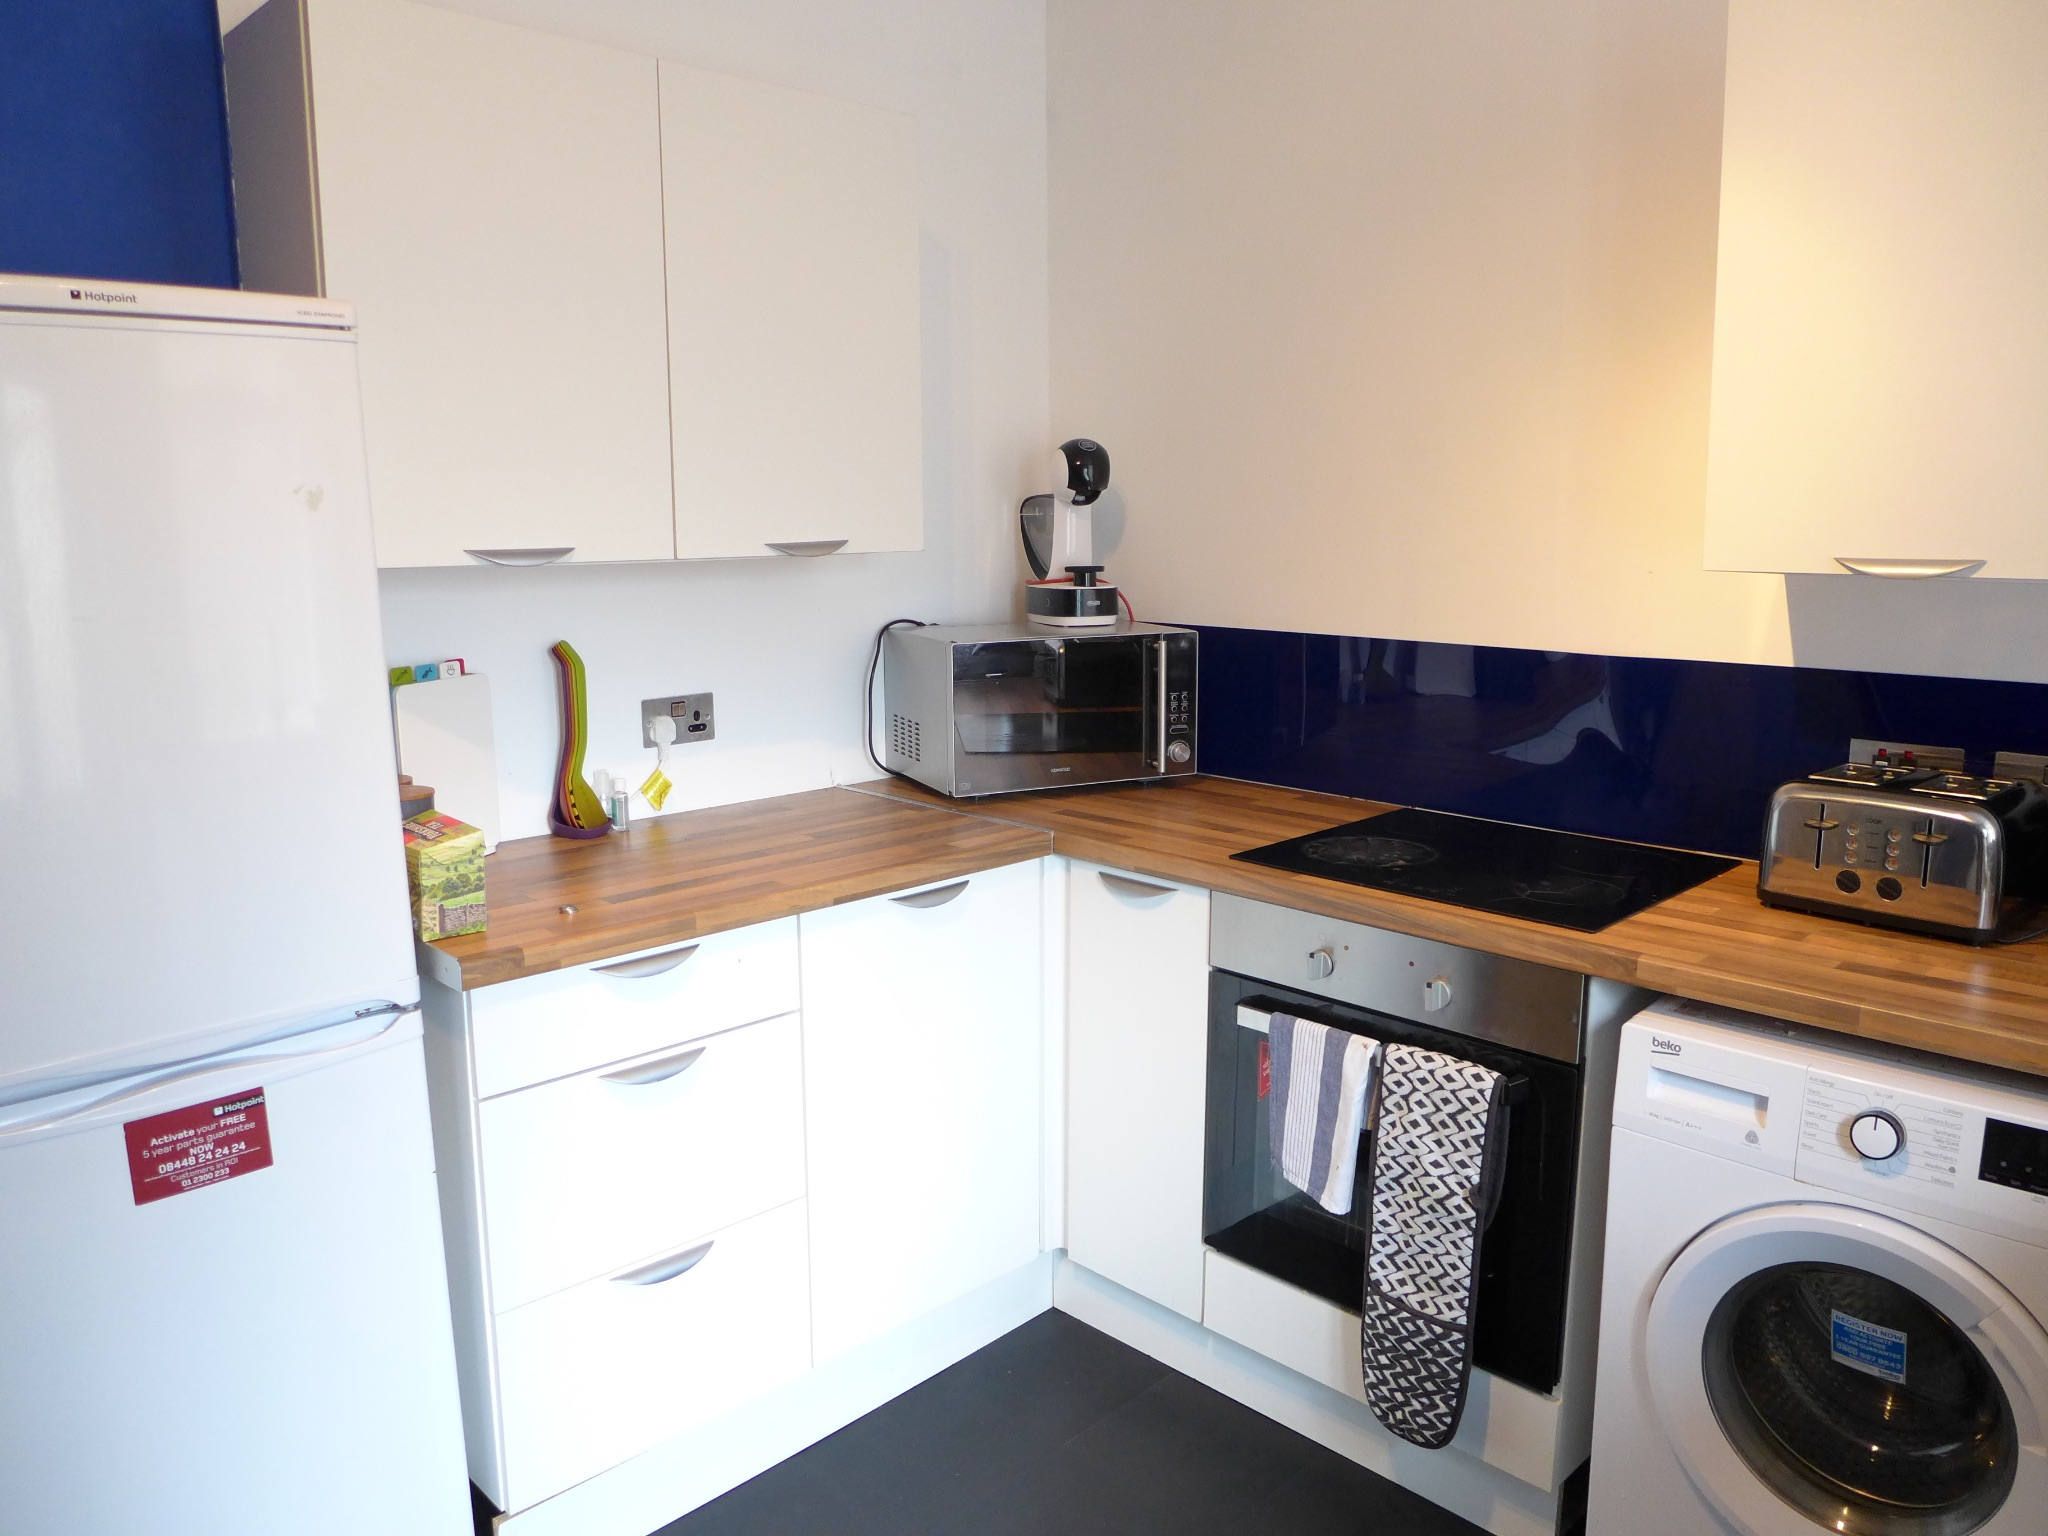 3 bedroom end terraced house For Sale in Todmorden - Photograph 6.